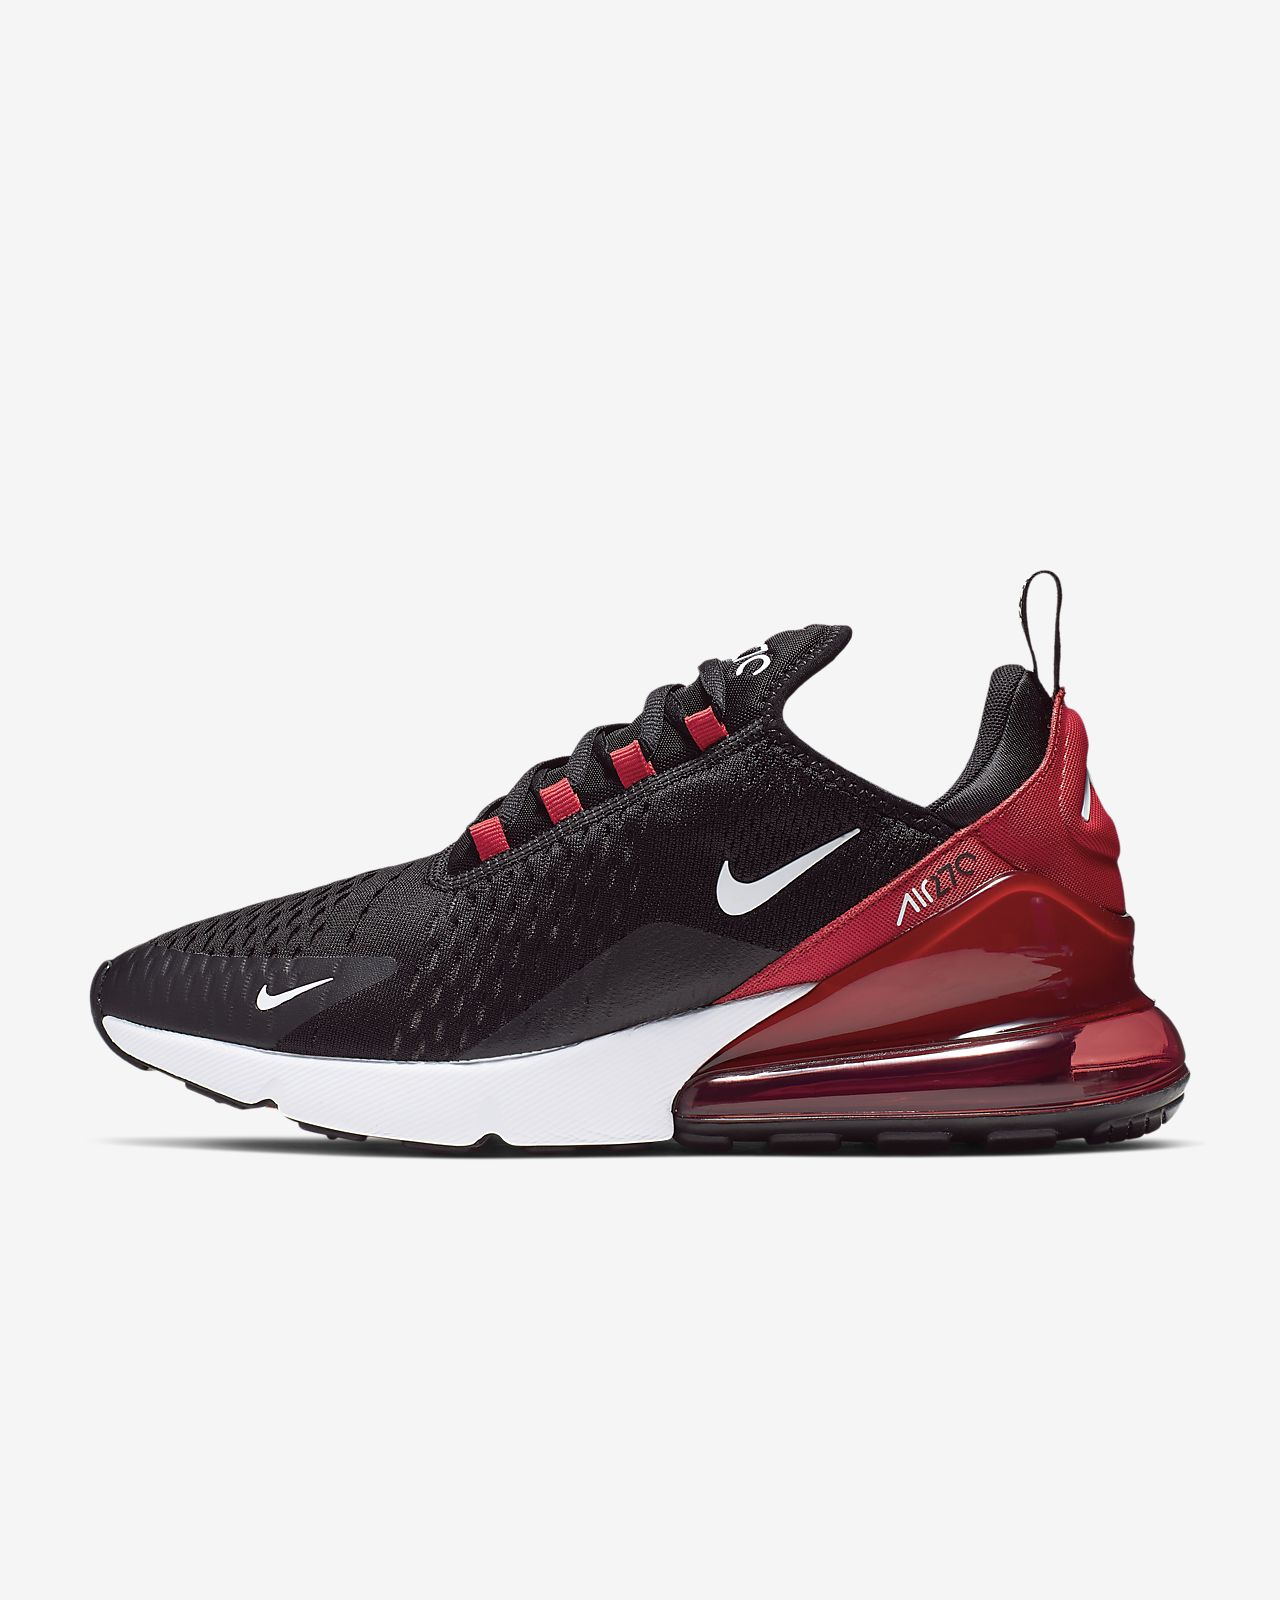 lowest price e6483 a5b42 ... Nike Air Max 270 Men s Shoe